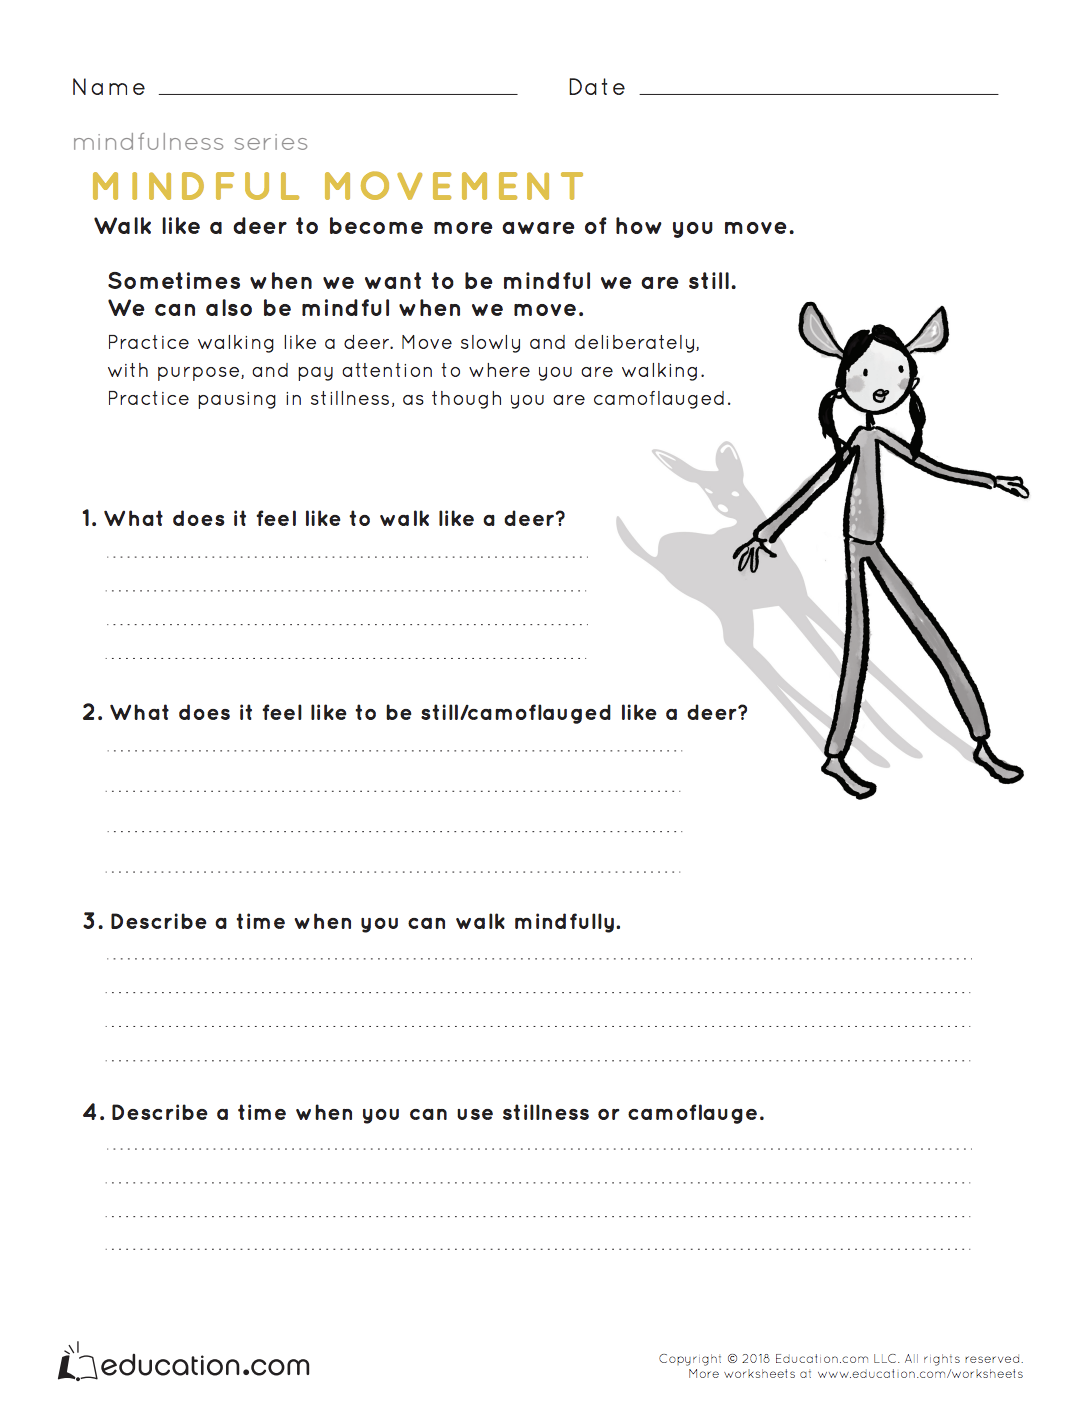 Mindfulness: Mindful Movement | Health lesson plans ...